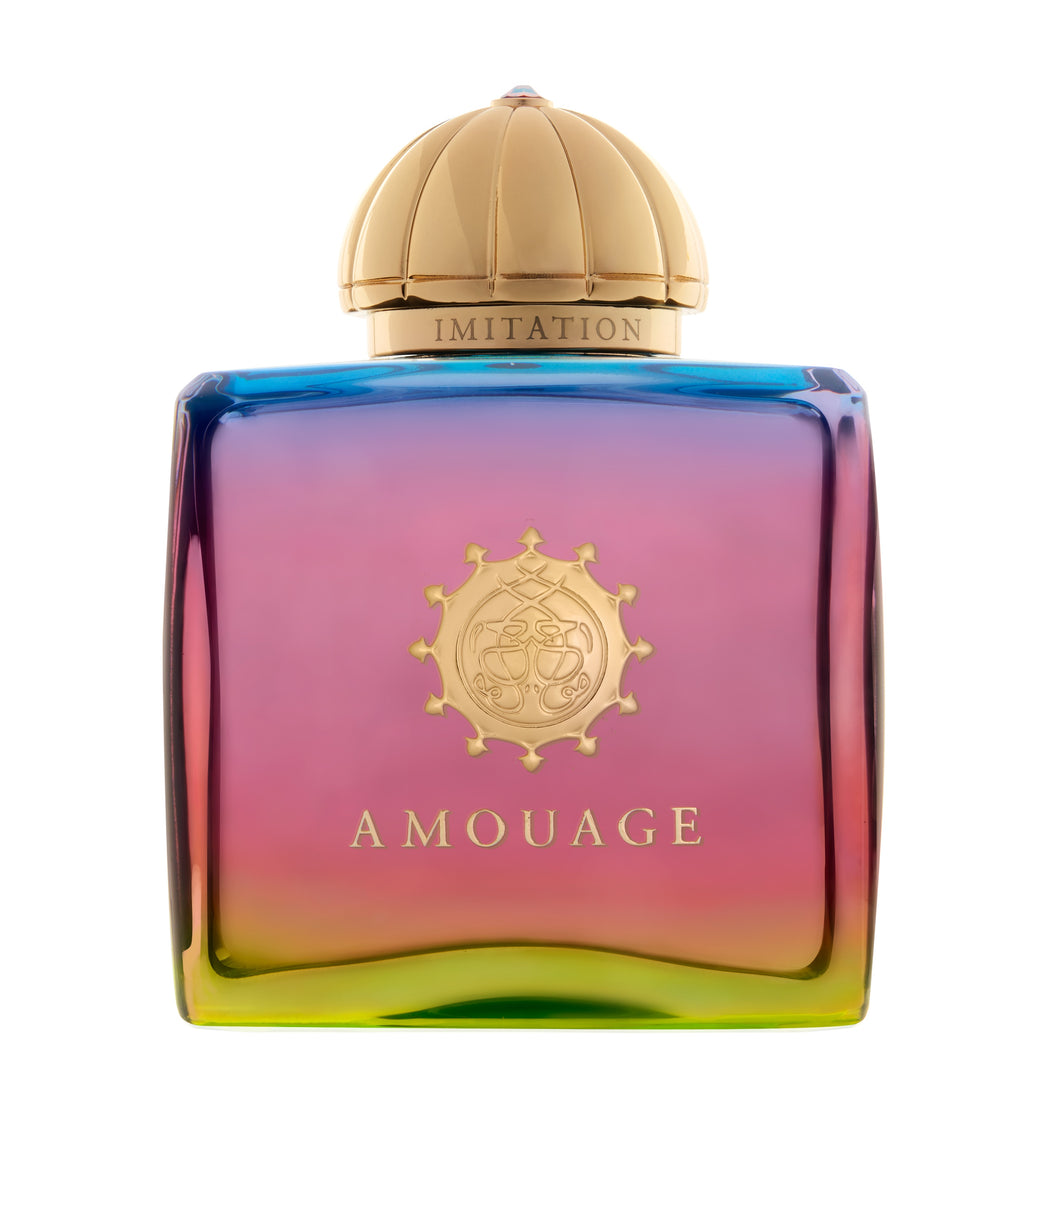 AMOUAGE Imitation Woman 100ml